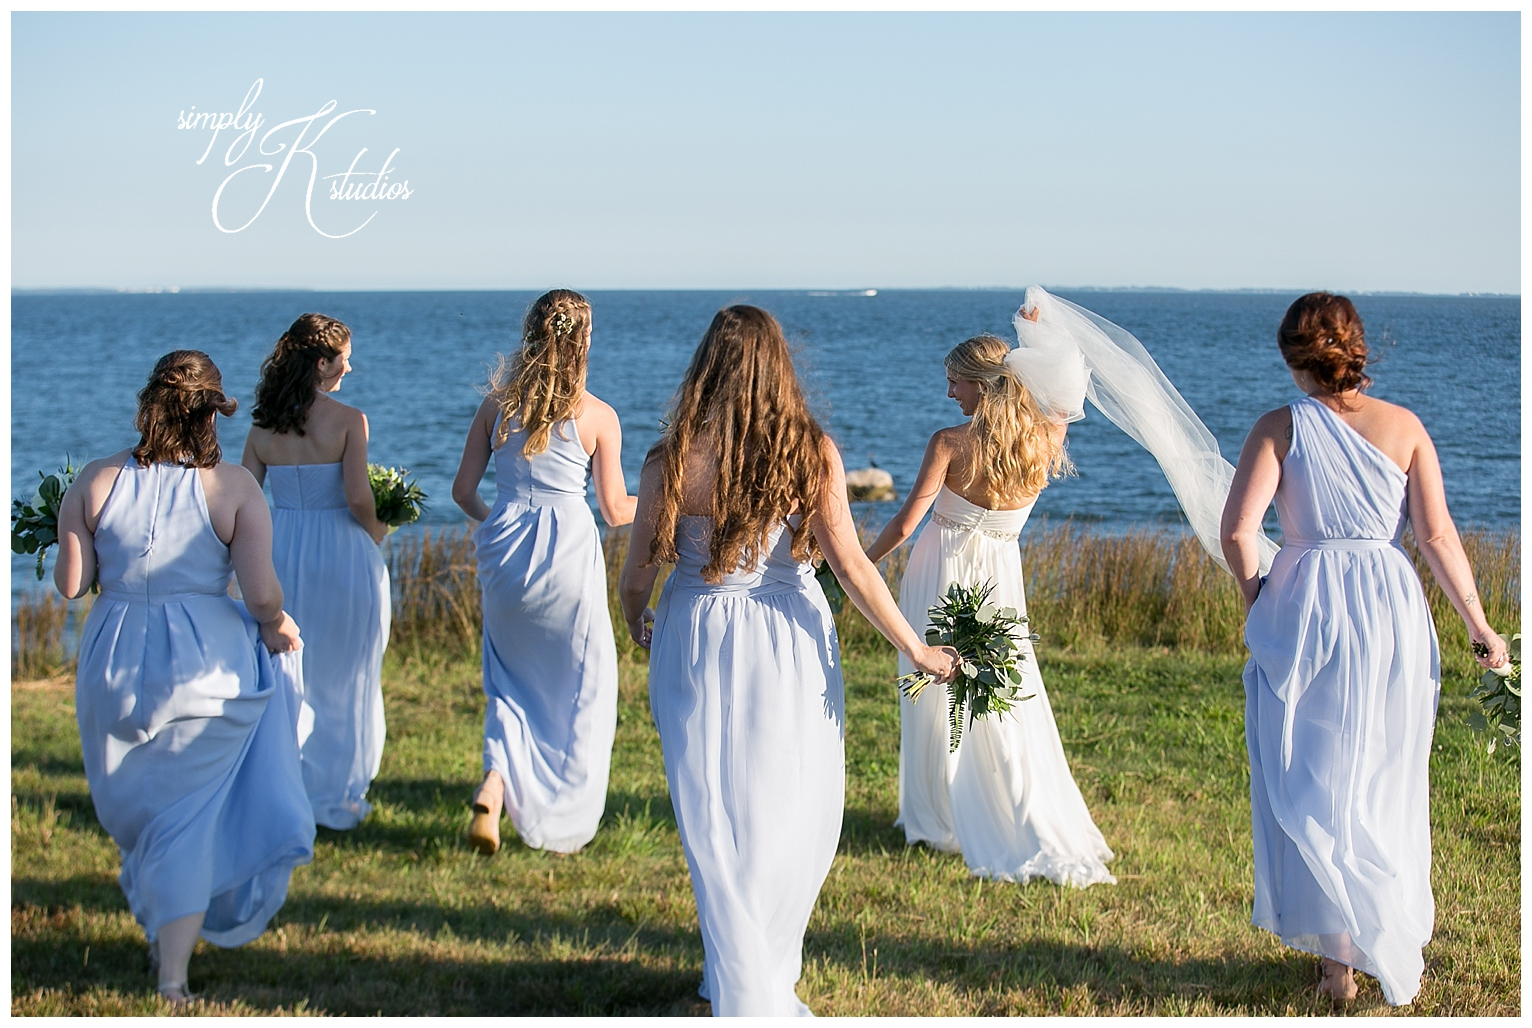 Wedding Photographers in Stonington CT.jpg